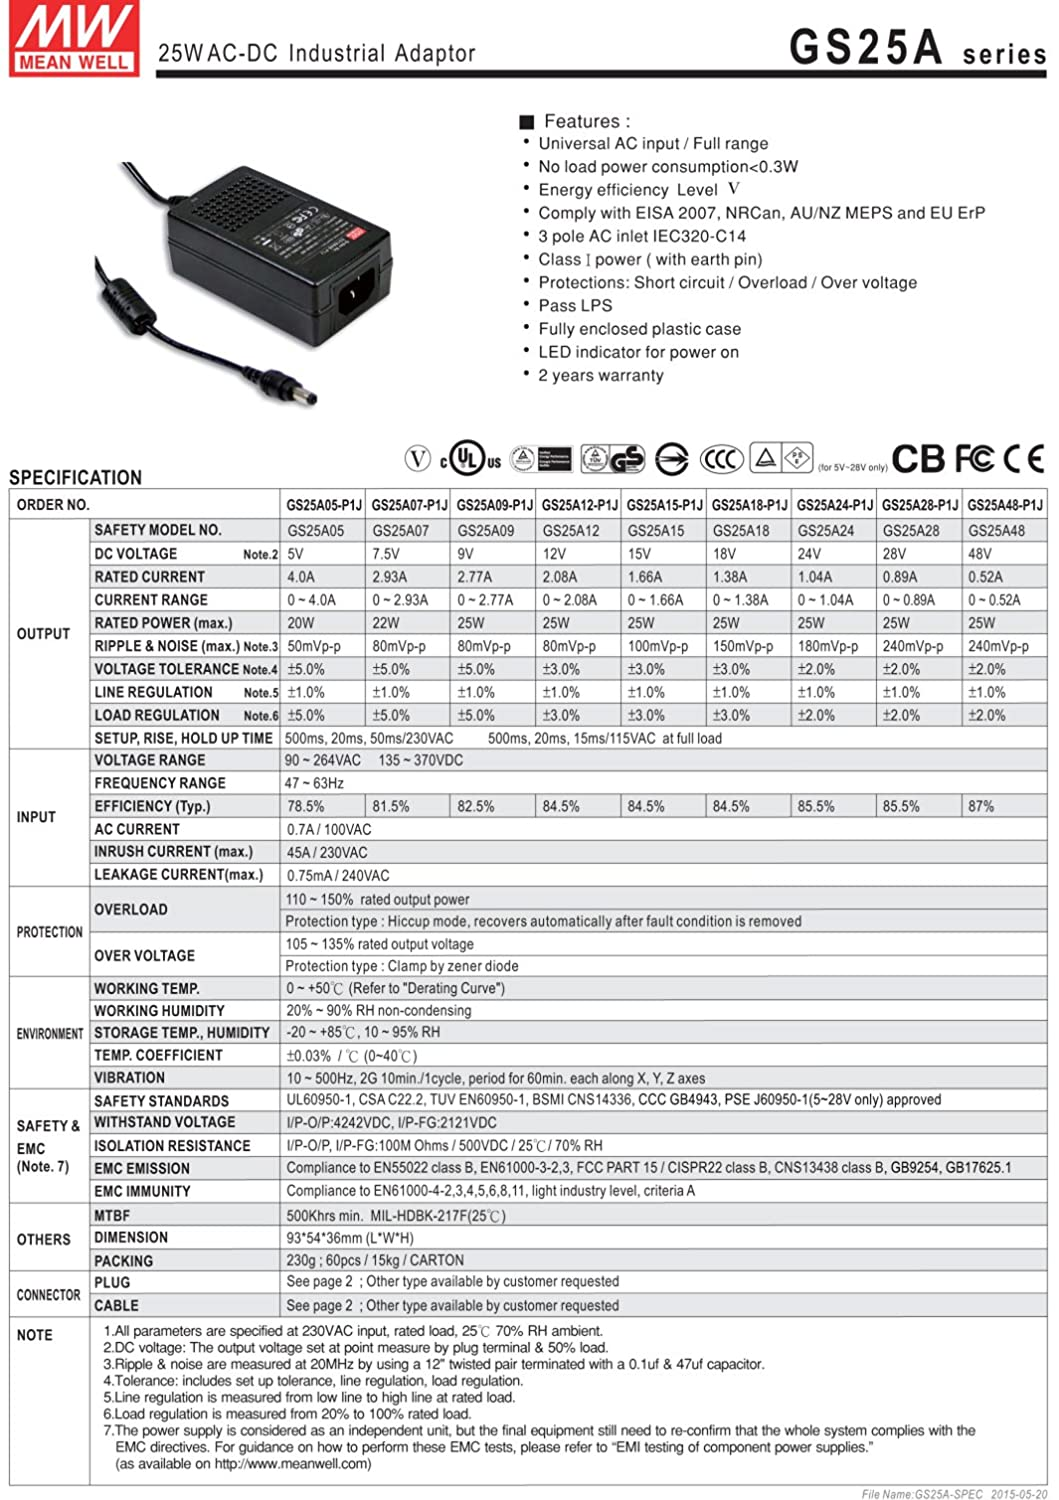 Amazon.com: MEAN WELL original GS25A12-P1J 12V 2.08A meanwell GS25A 12V 25W AC-DC Industrial Adaptor: Industrial & Scientific